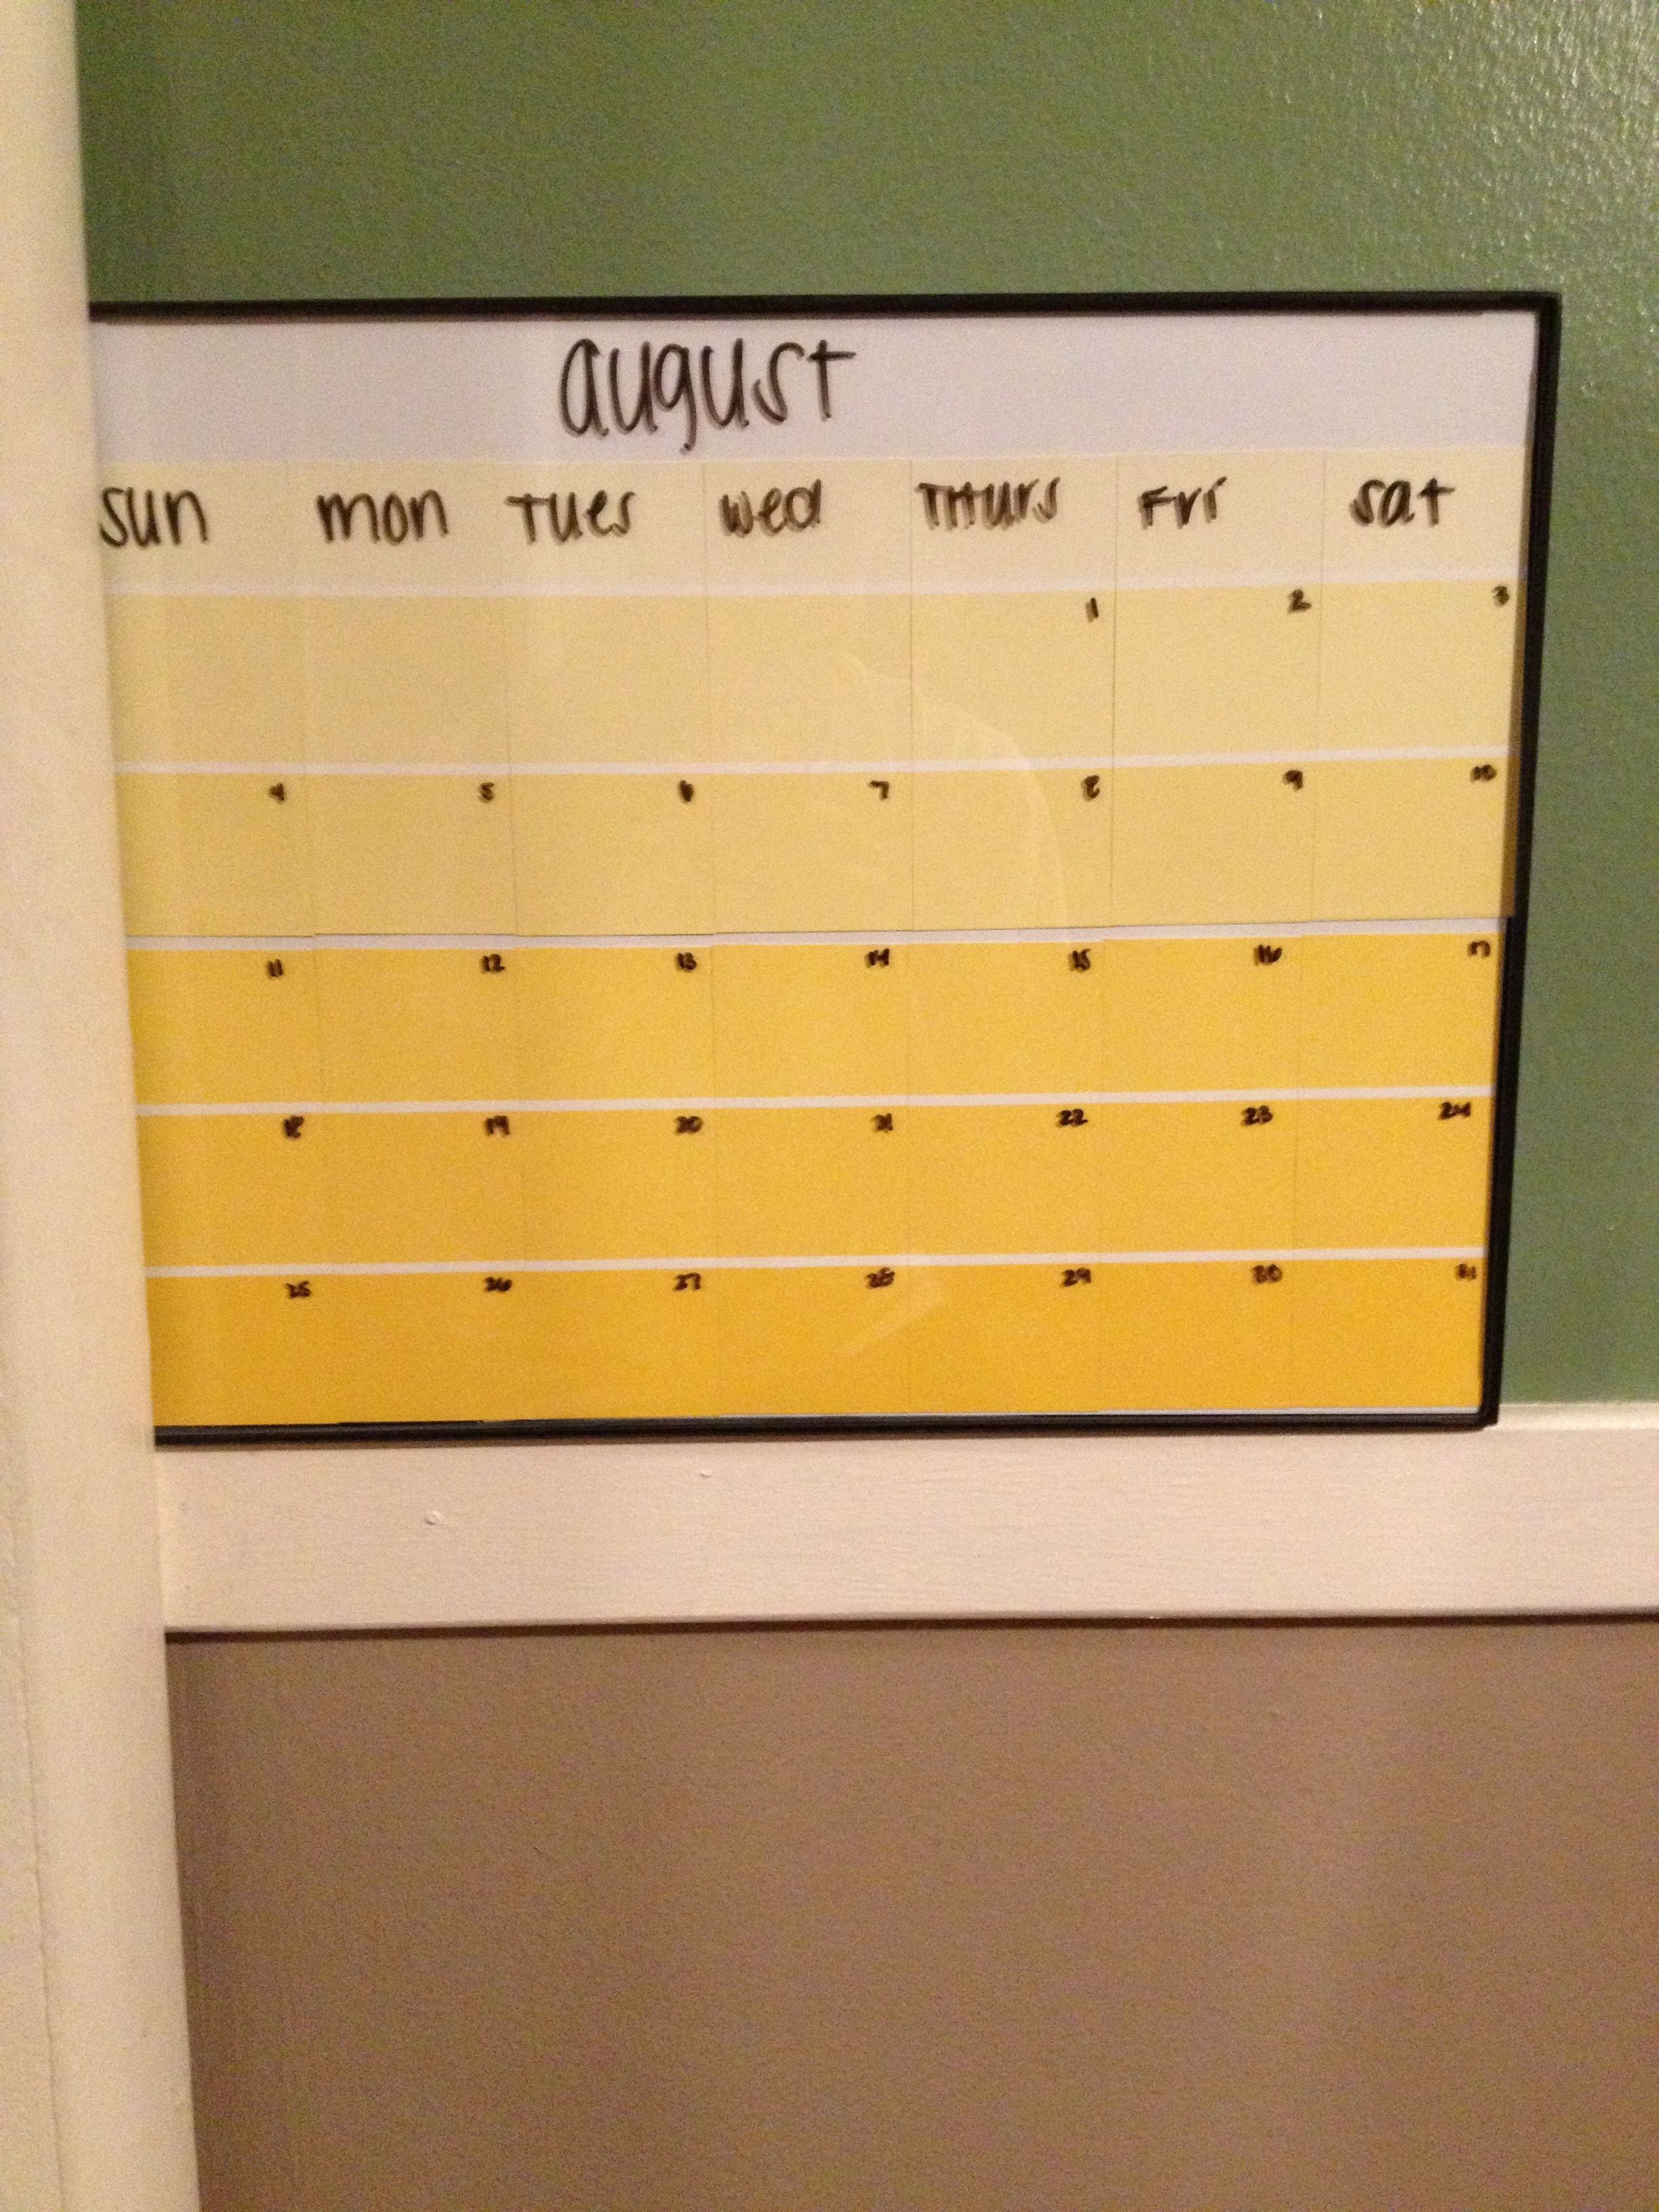 Diy Paint Sample Calendar I Made For My Dorm Room With A X